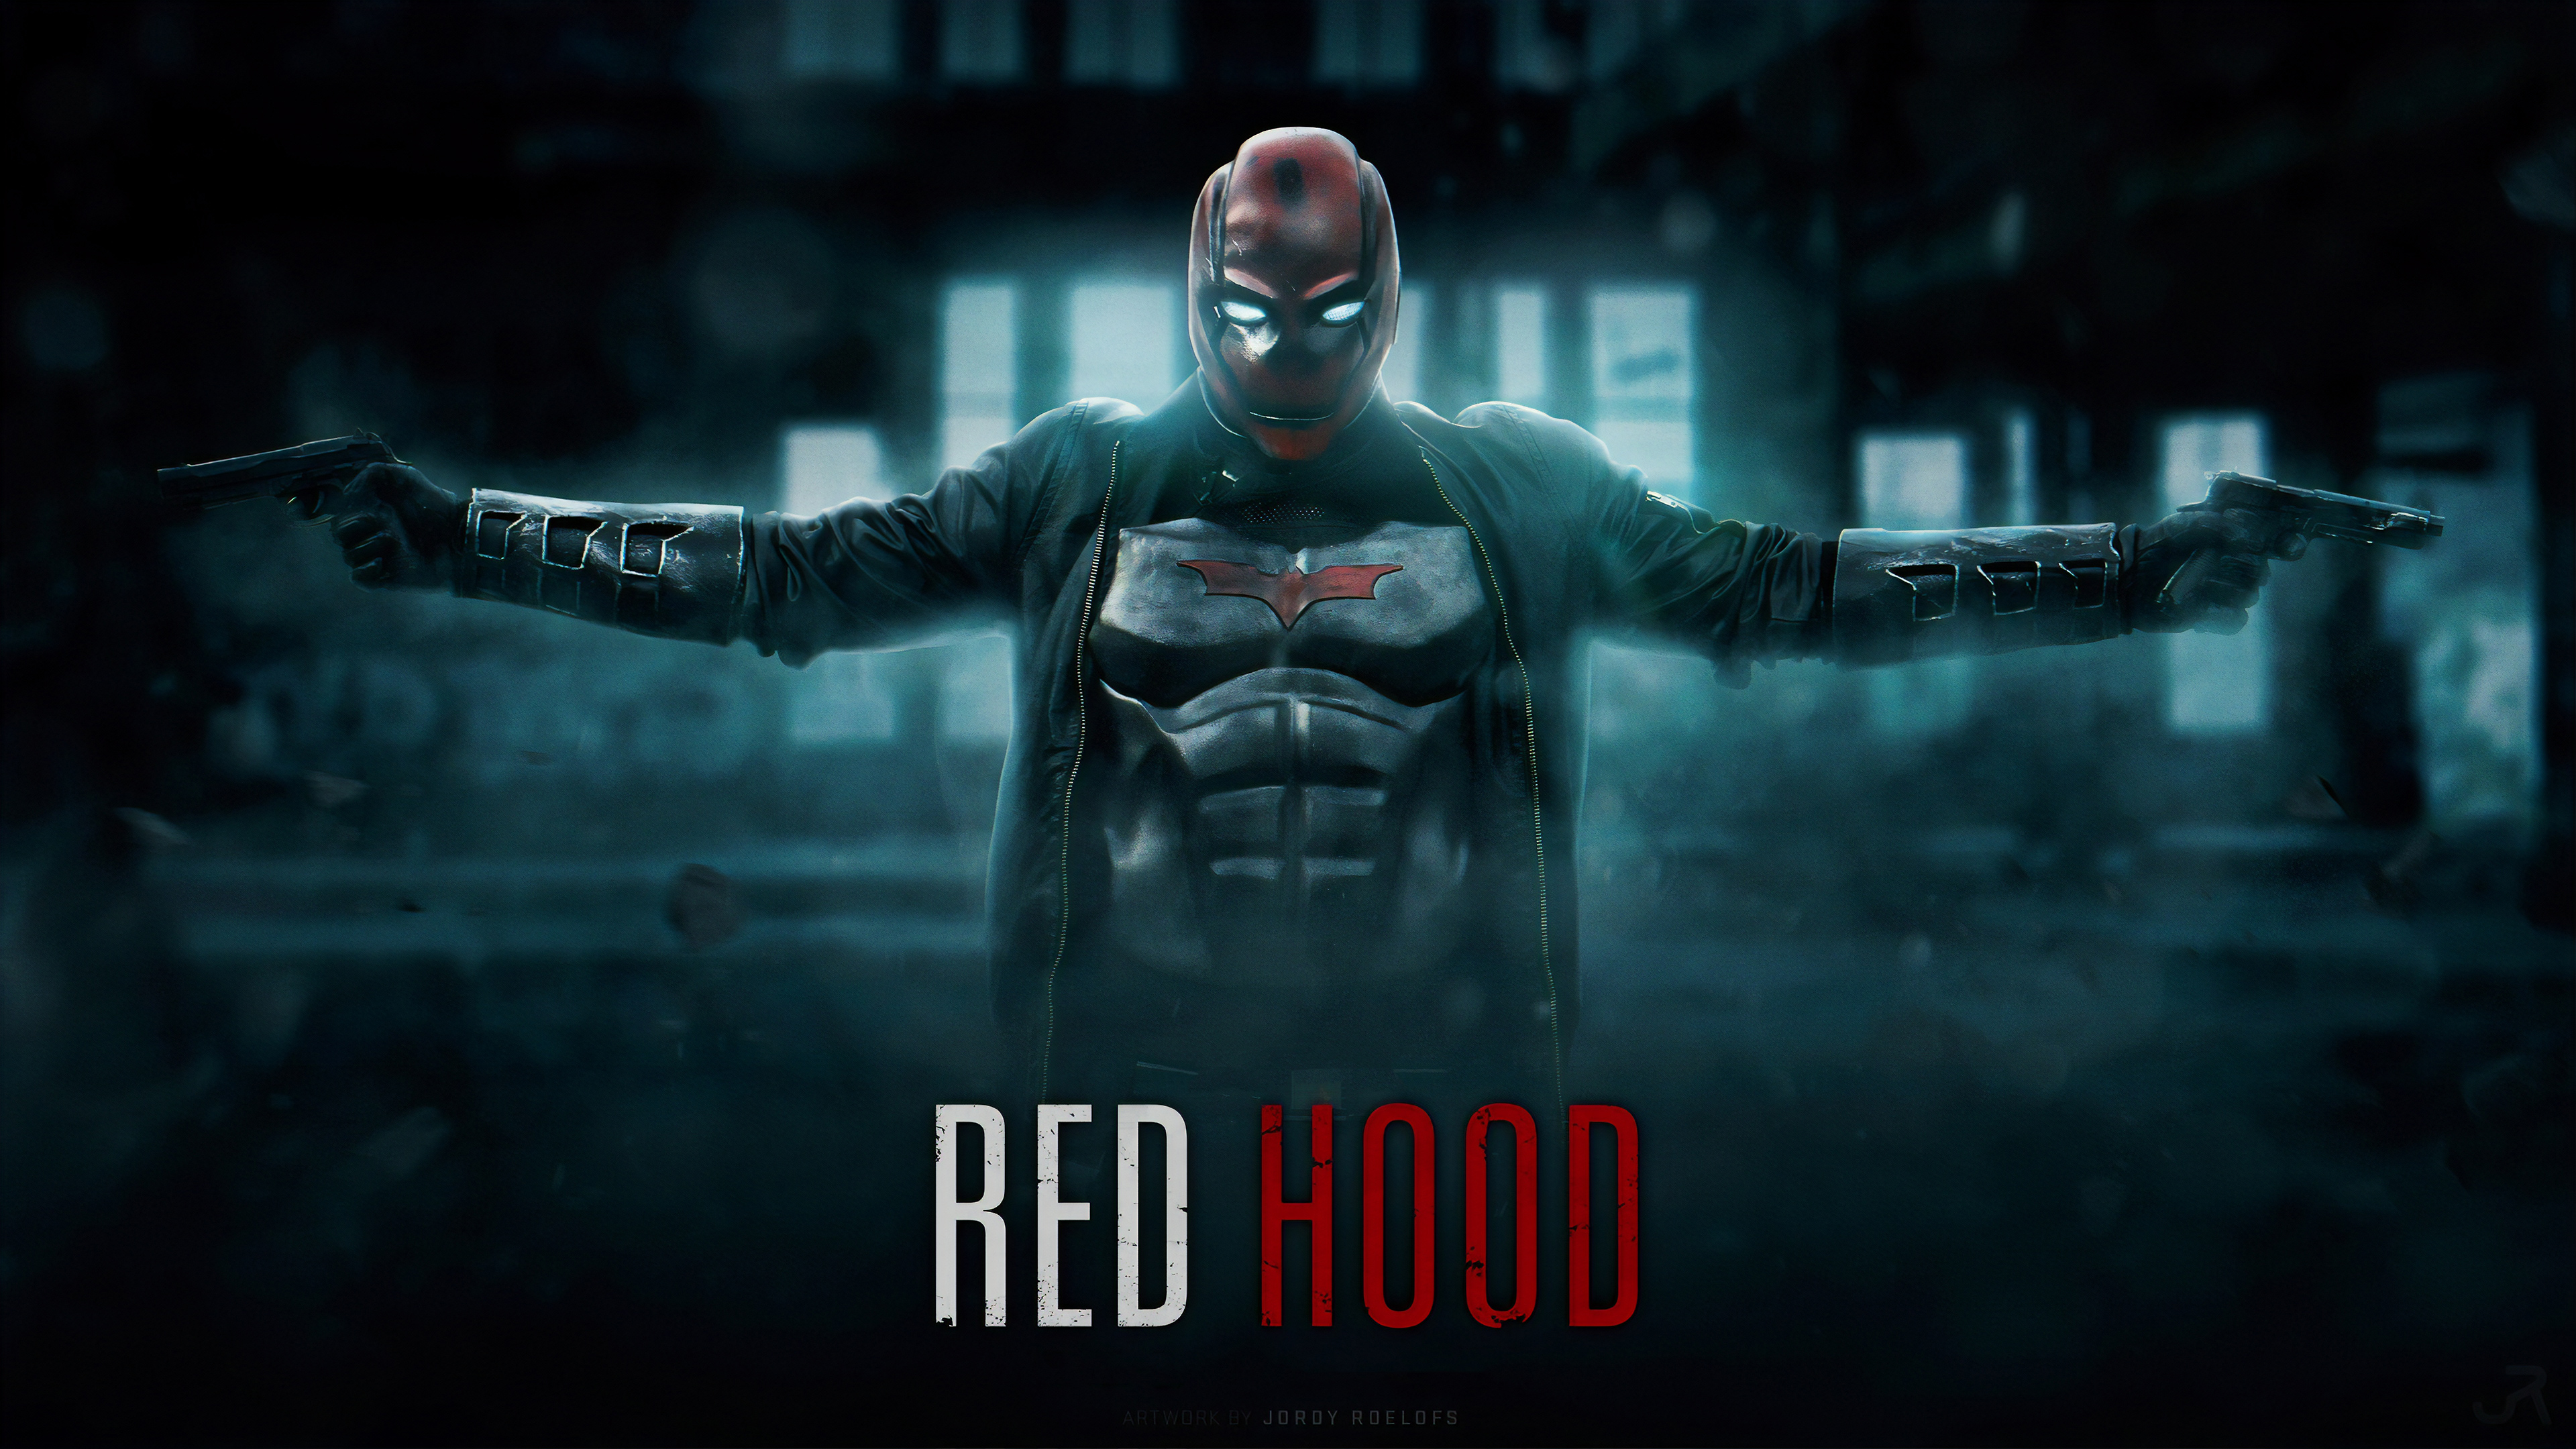 red hood 2019 1570394797 - Red Hood 2019 - superheroes wallpapers, red hood wallpapers, hd-wallpapers, deviantart wallpapers, 4k-wallpapers